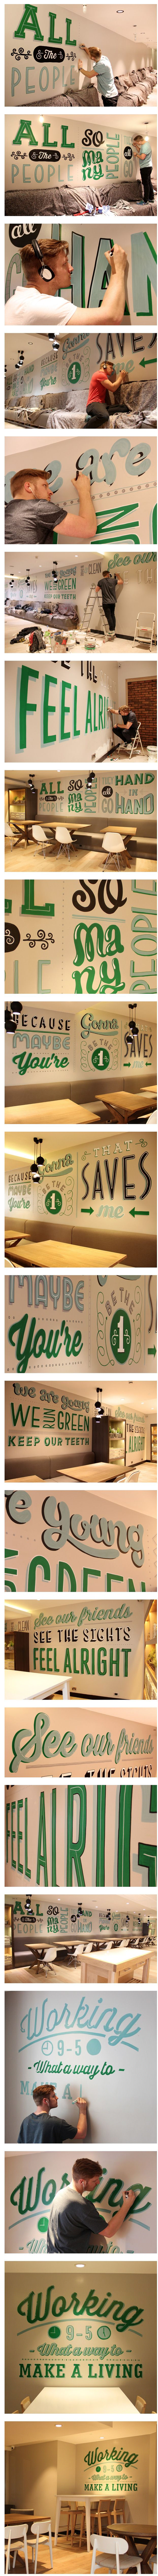 So awesome! Kelly green & light blue lettering project